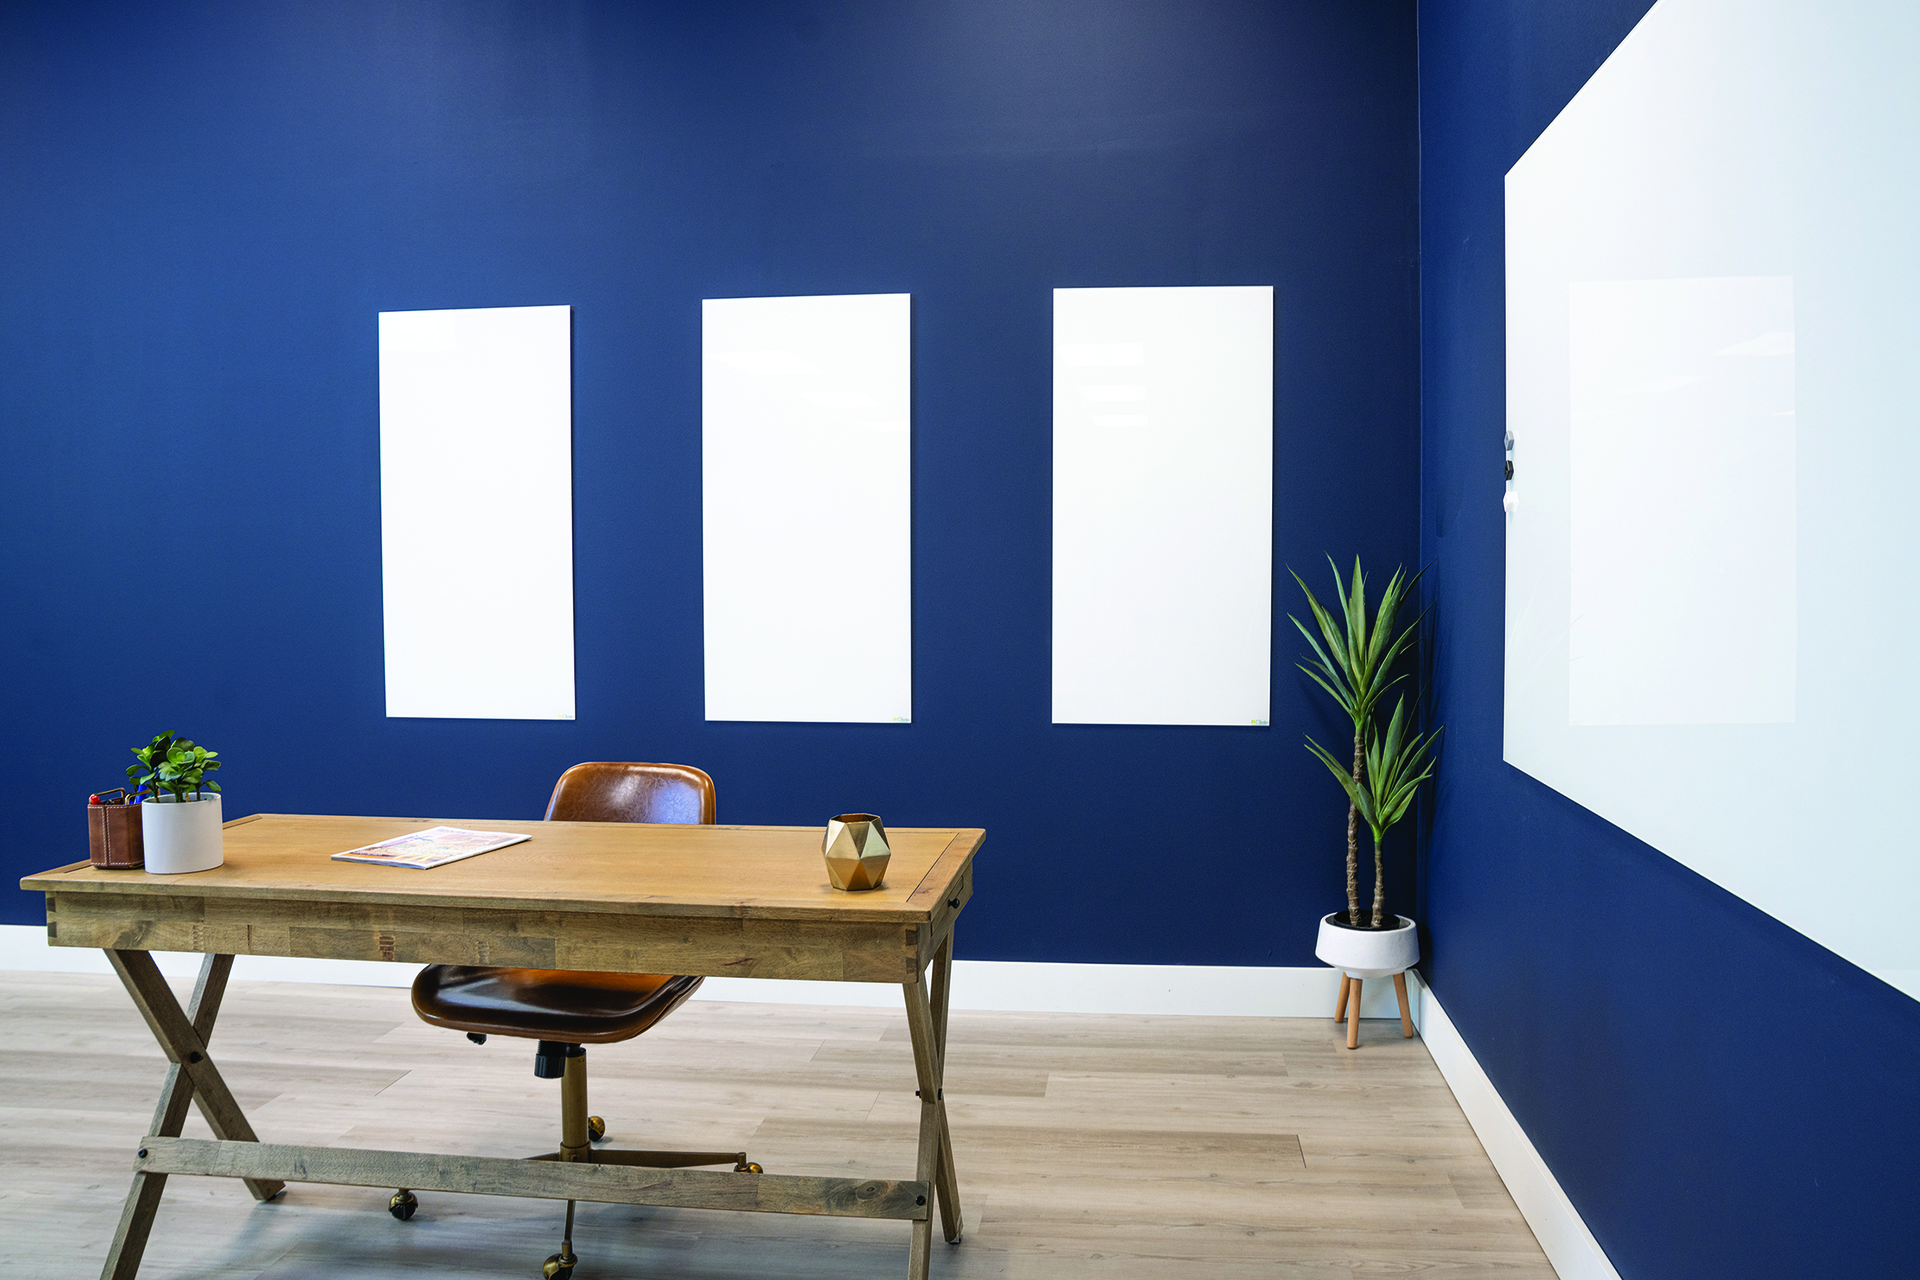 The PROFILE SERIES Frameless Magnetic Whiteboard features an incredibly smooth LCS3 Porcelain surface that delivers a great writing experience and will stand the test of time. With simple installation and no exposed fasteners, these stylish, low profile whiteboards appear to float on the wall. LCS3 Porcelain steel accepts magnets, won't ghost or stain, and is warrantied for life.